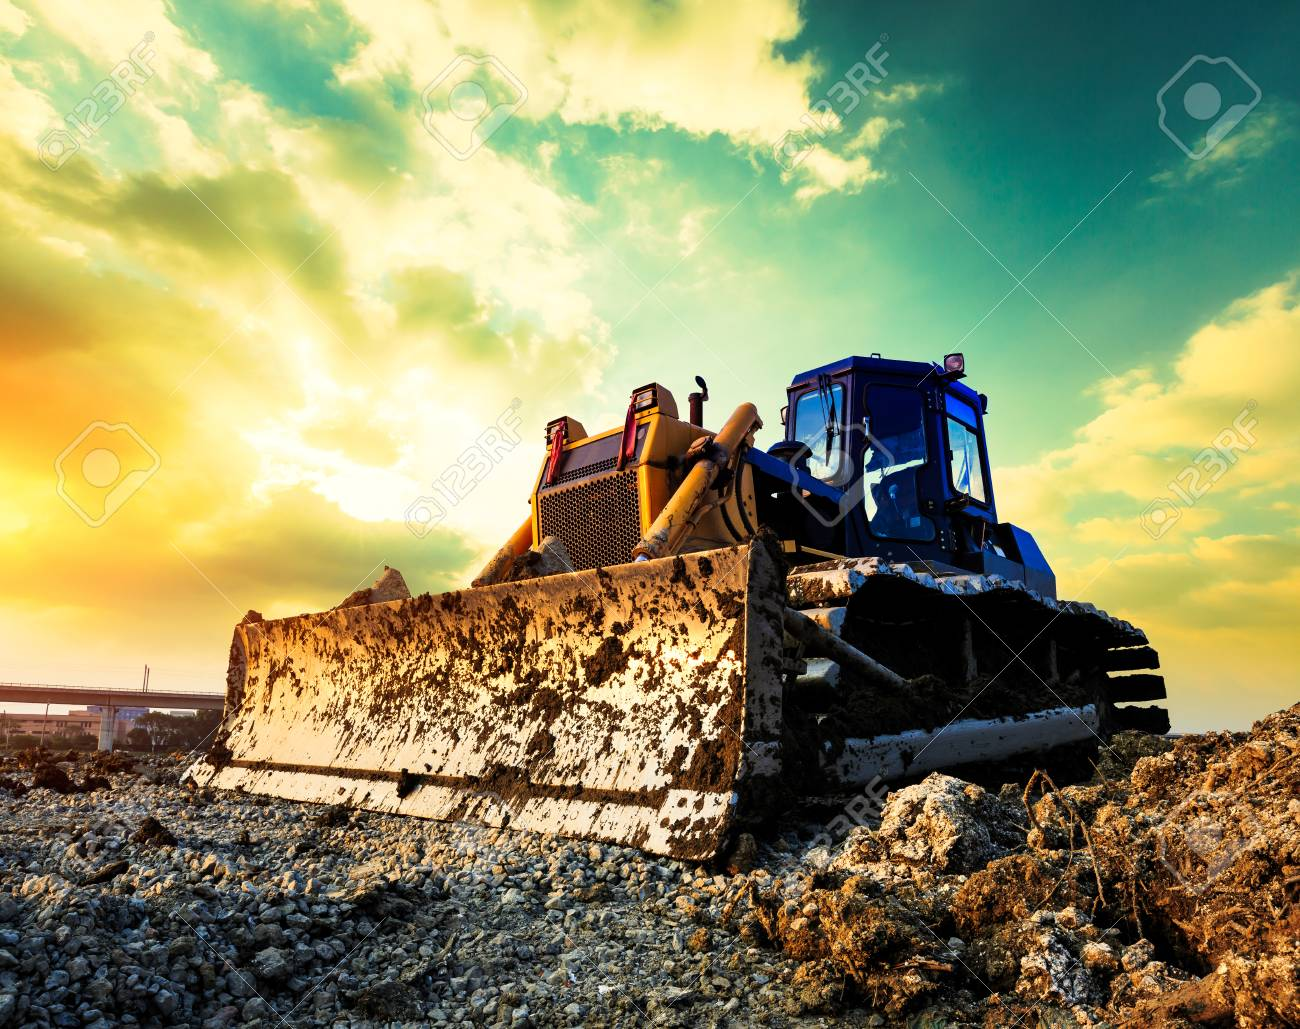 bulldozer on a building site at sunset - 89256049